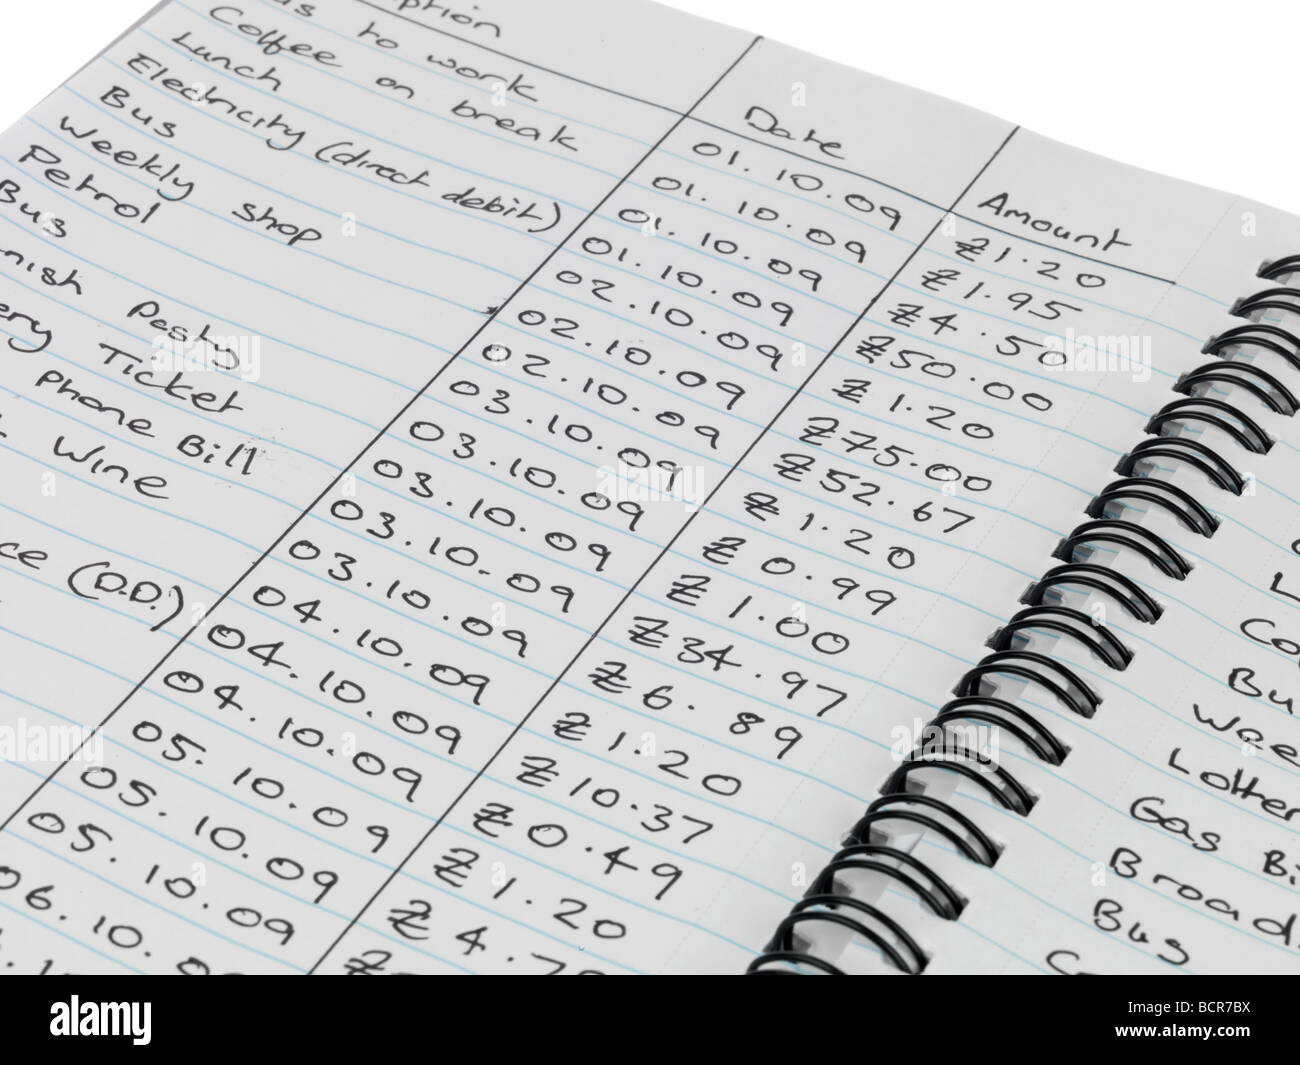 cash book stock photos cash book stock images alamy